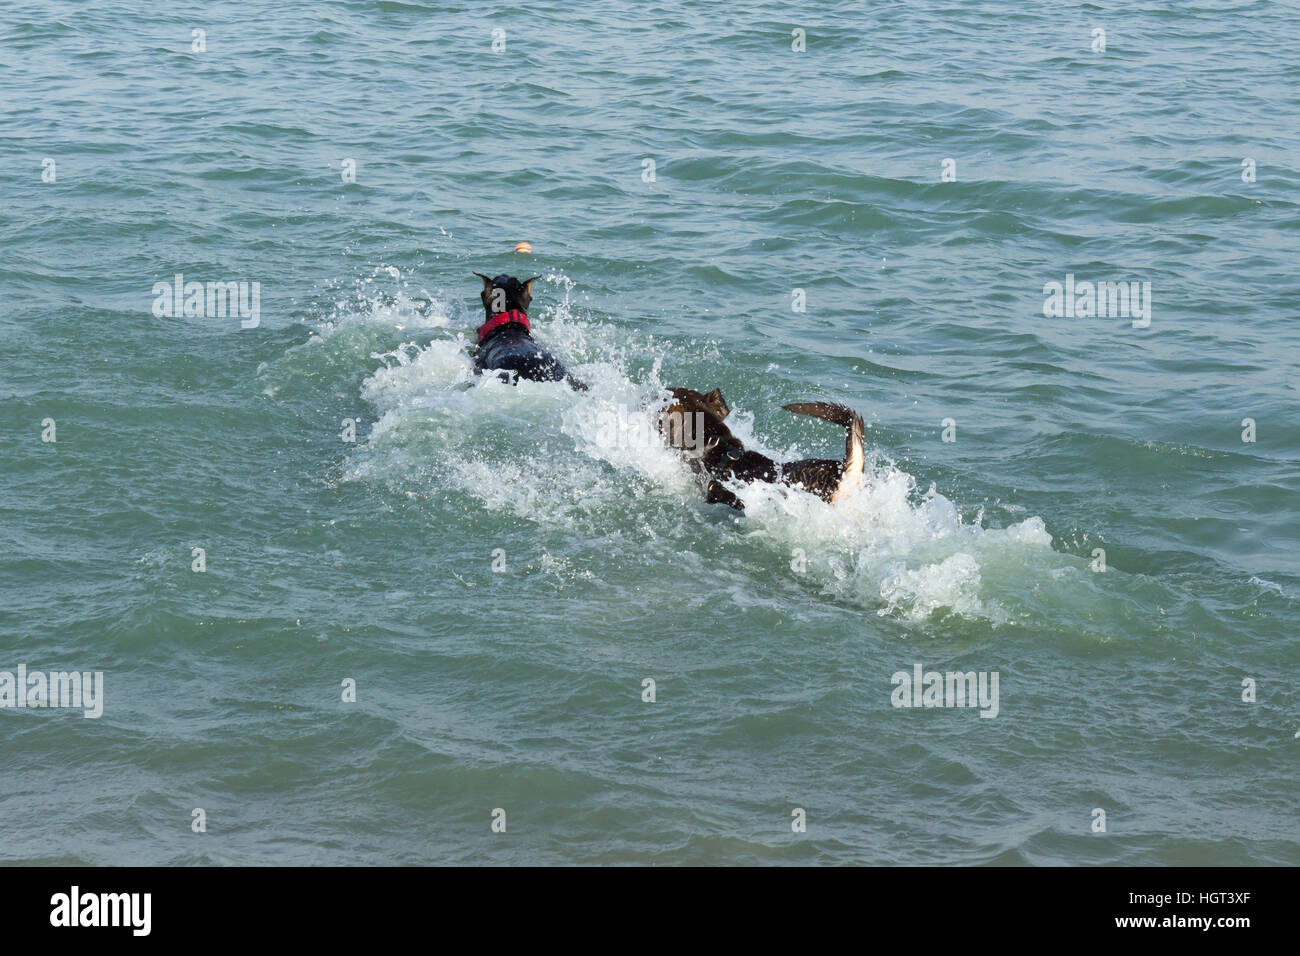 Doberman pinscher and a german shepherd mix nearly hidden in a splash of water, caught up in a two dog race to fetch - Stock Image